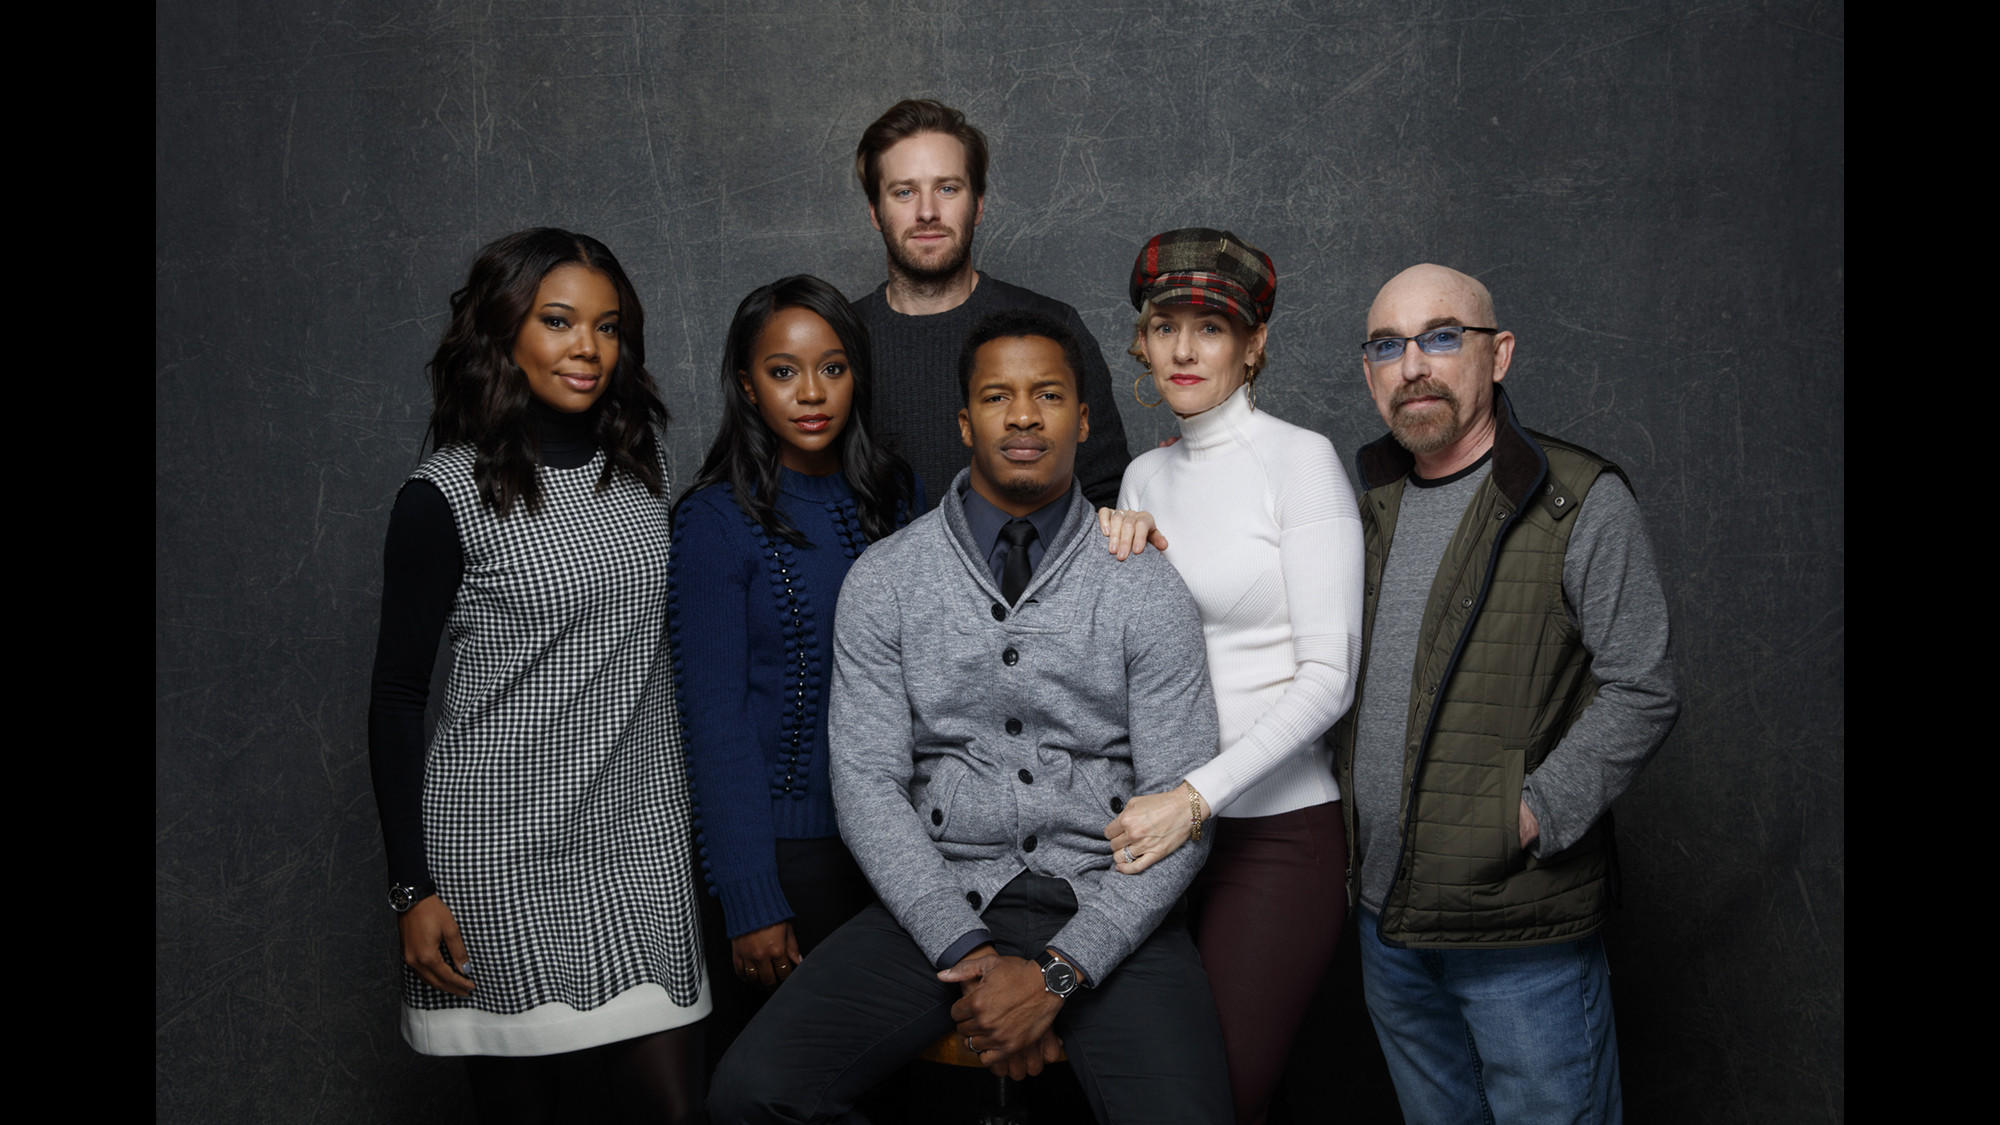 """Gabrielle Union, left, Aja Naomi King, Armie Hammer, director Nate Parker, Penelope Ann Miller and Jackie Earle Haley from the film """"The Birth of A Nation."""" (Jay L. Clendenin / Los Angeles Times)"""